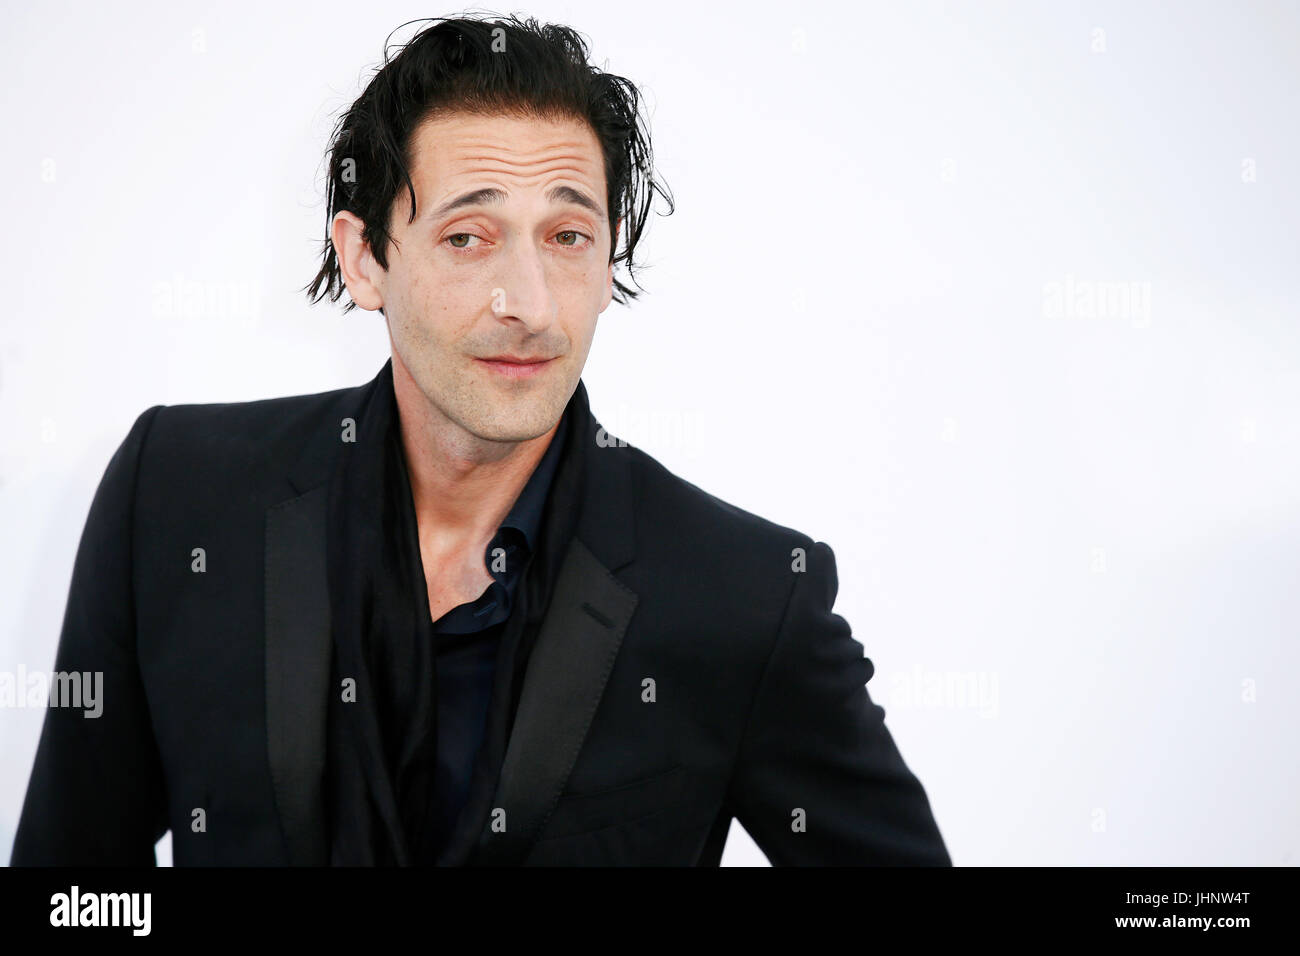 CAP D'ANTIBES, FRANCE - MAY 25: Adrien Brody arrives at the amfAR Gala Cannes 2017 at Hotel du Cap-Eden-Roc - Stock Image